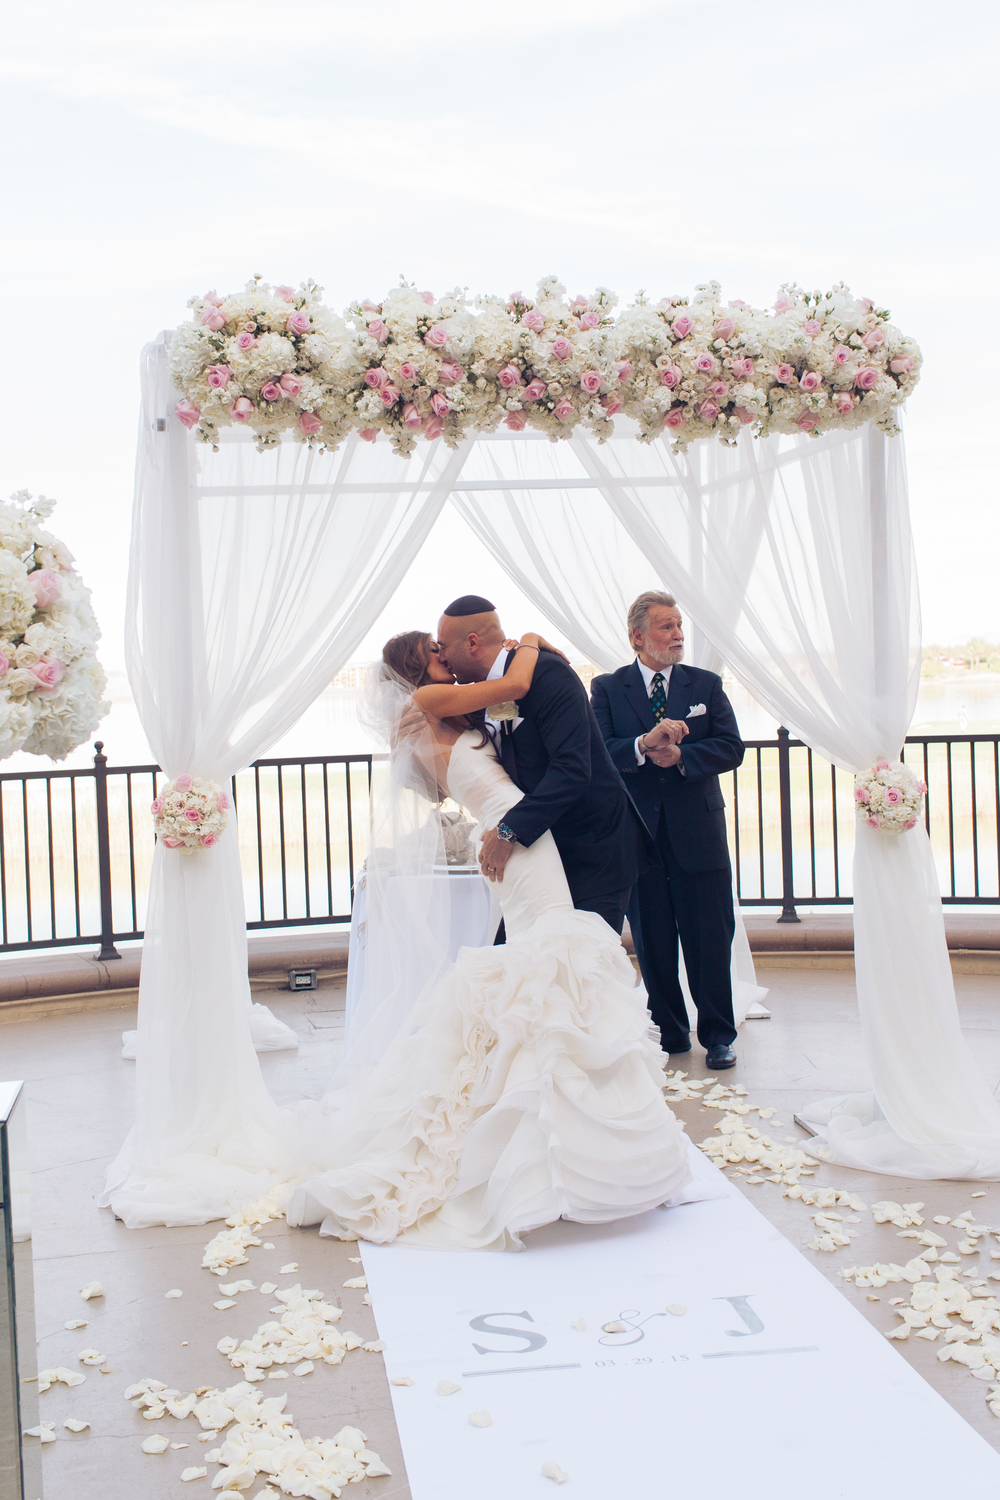 The couple's dramatic first kiss had the groom dipping the bride in front of their guests and Rabbi Mel Hecht.      Las Vegas Wedding Planner Andrea Eppolito  |  Wedding at Lake Las Vegas  | White and Blu  sh and Grey Wedding | Luxury Wedding Las Vegas